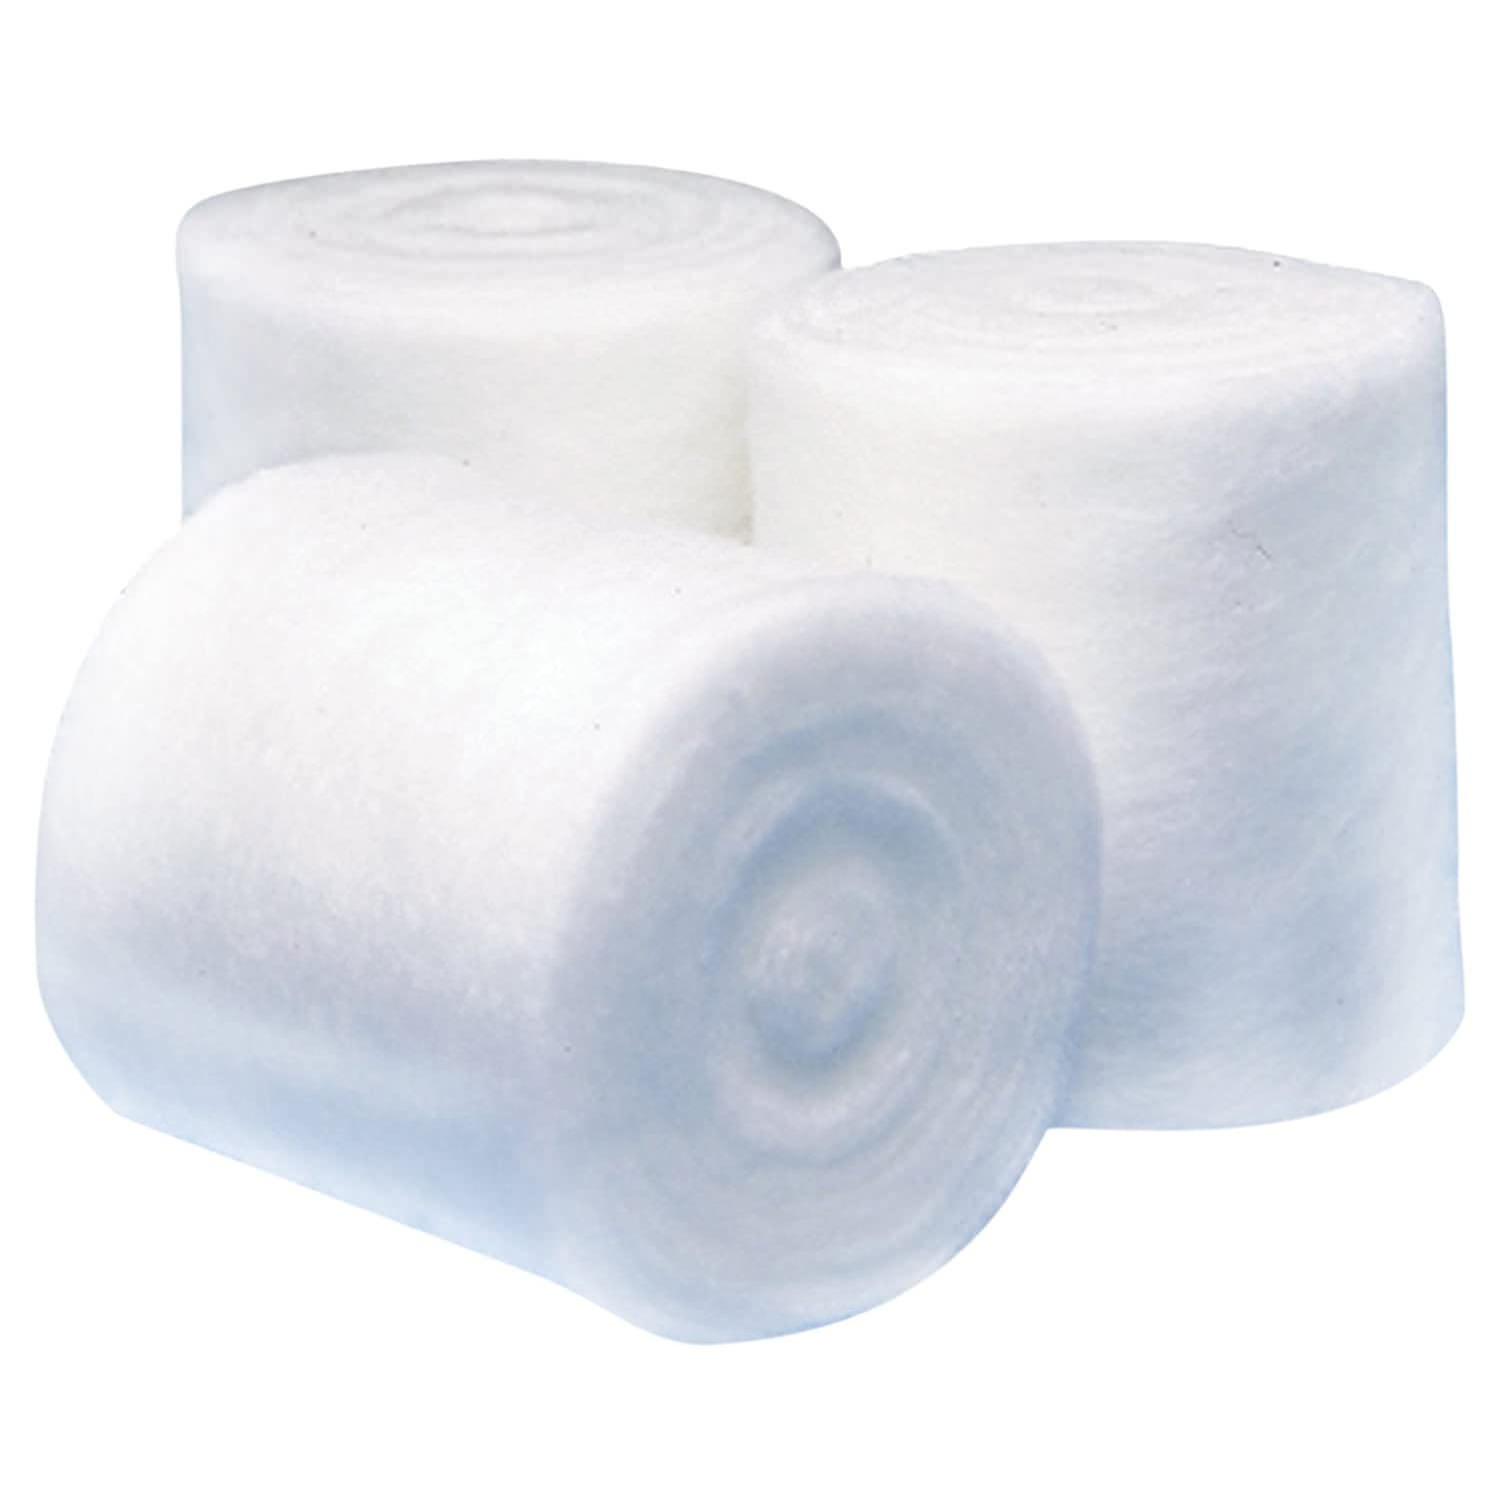 3M Synthetic Undercast Cast Padding, Polyester, 4 Yards